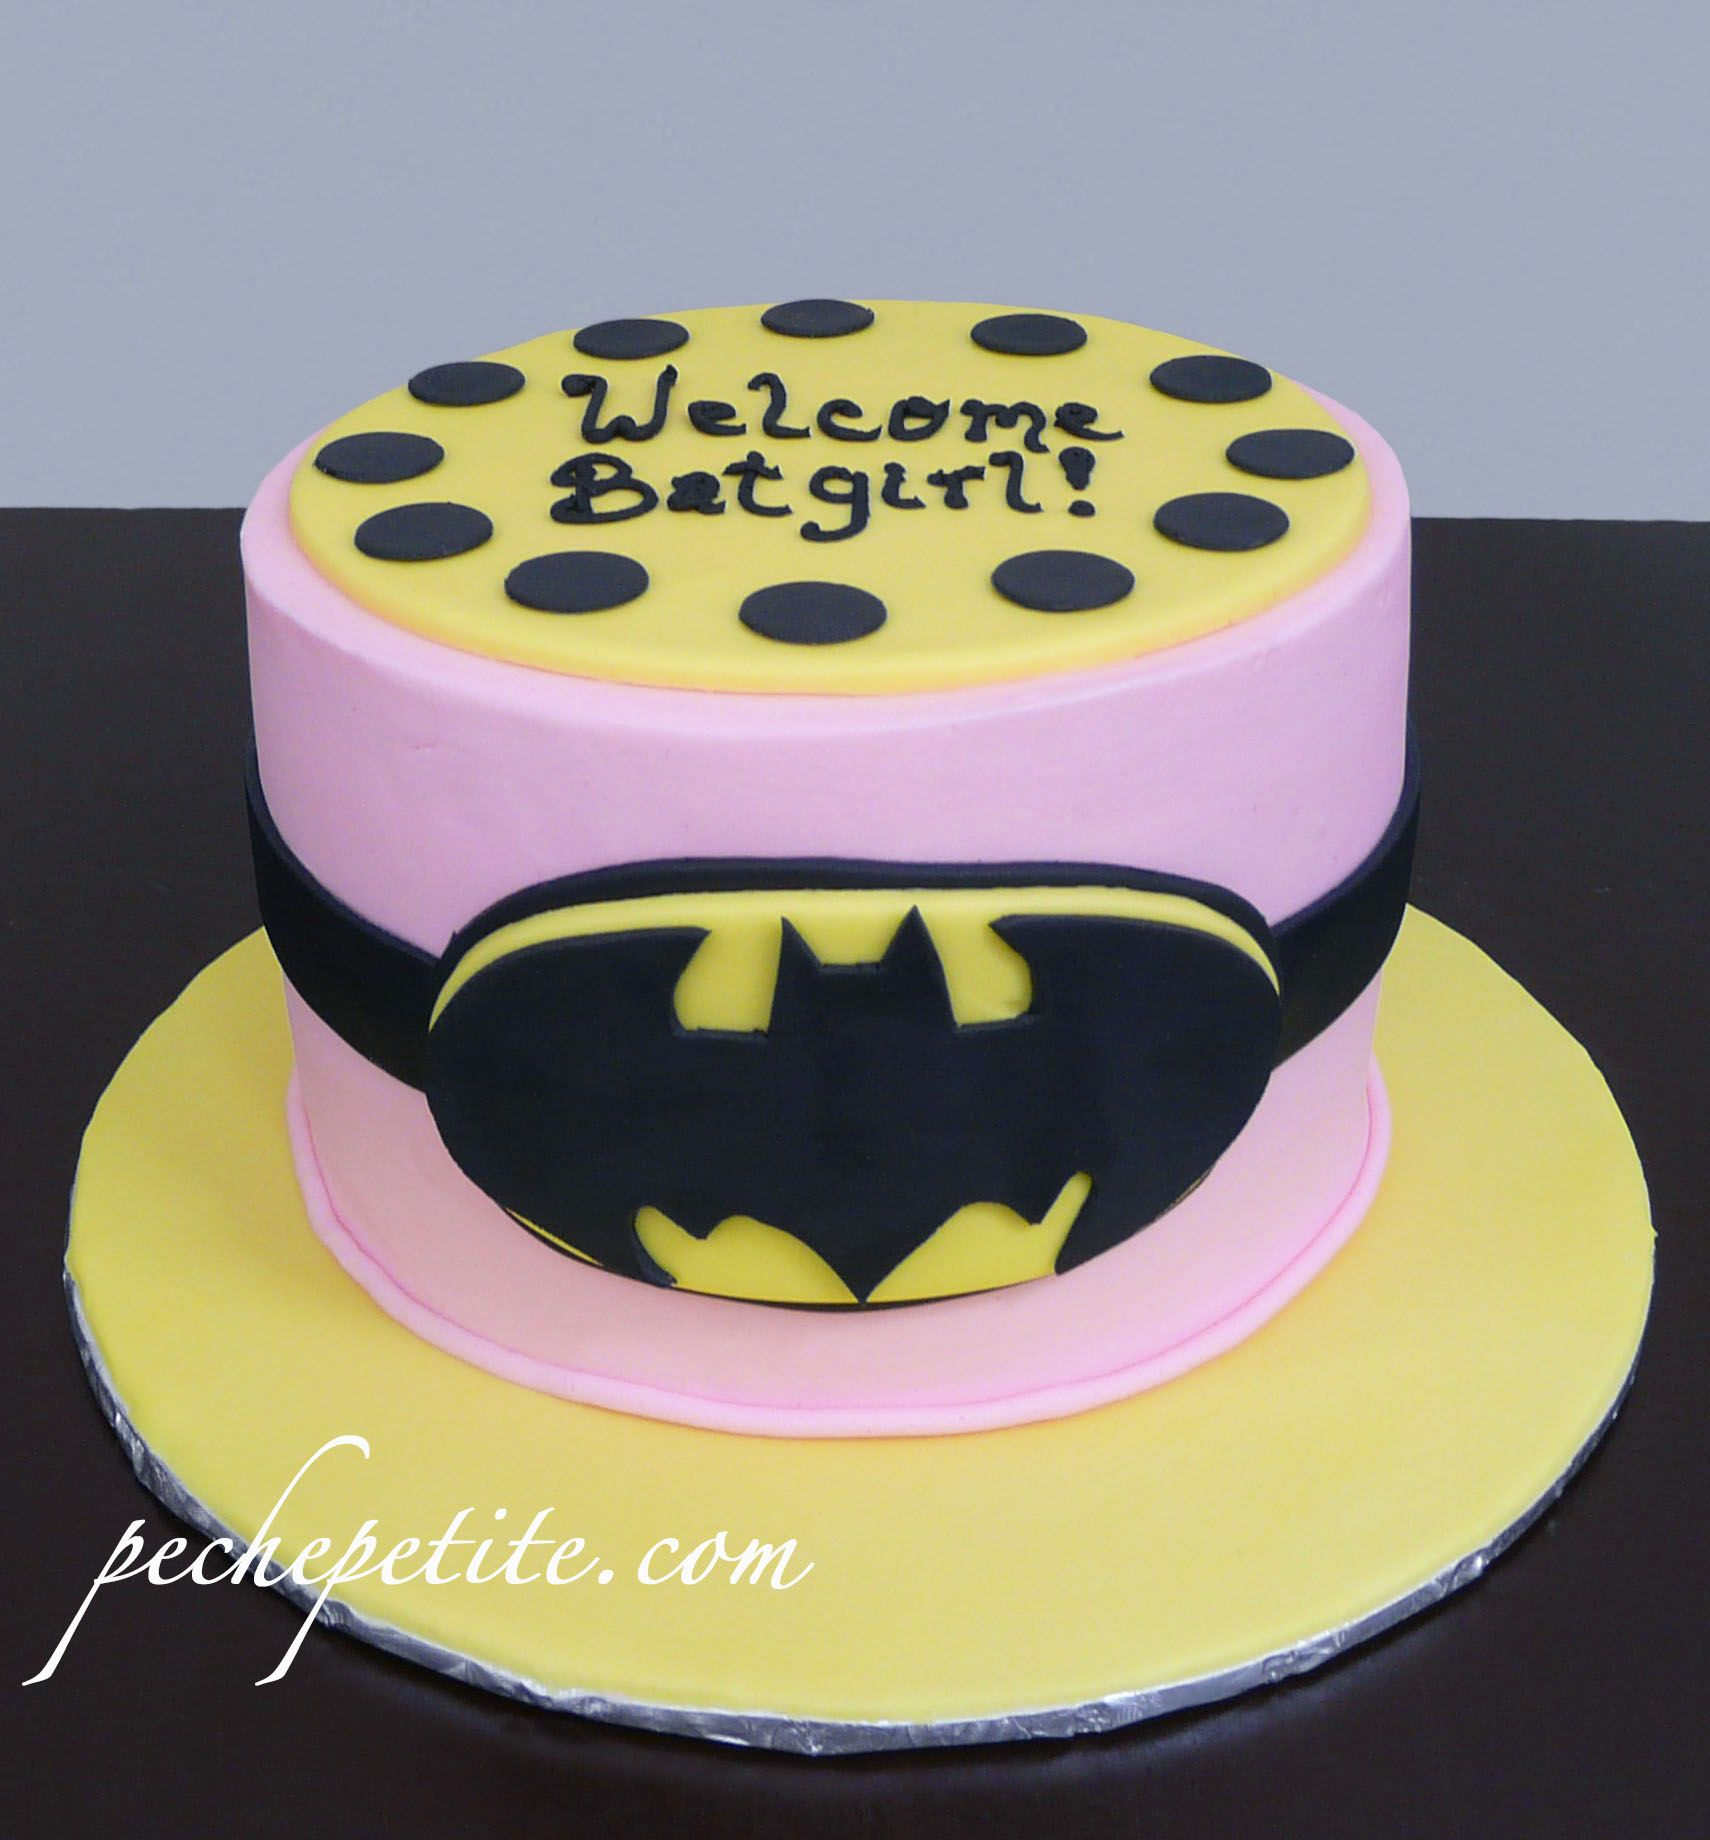 Cute Batgirl Cake For A Baby Shower From Pechepetite Baby